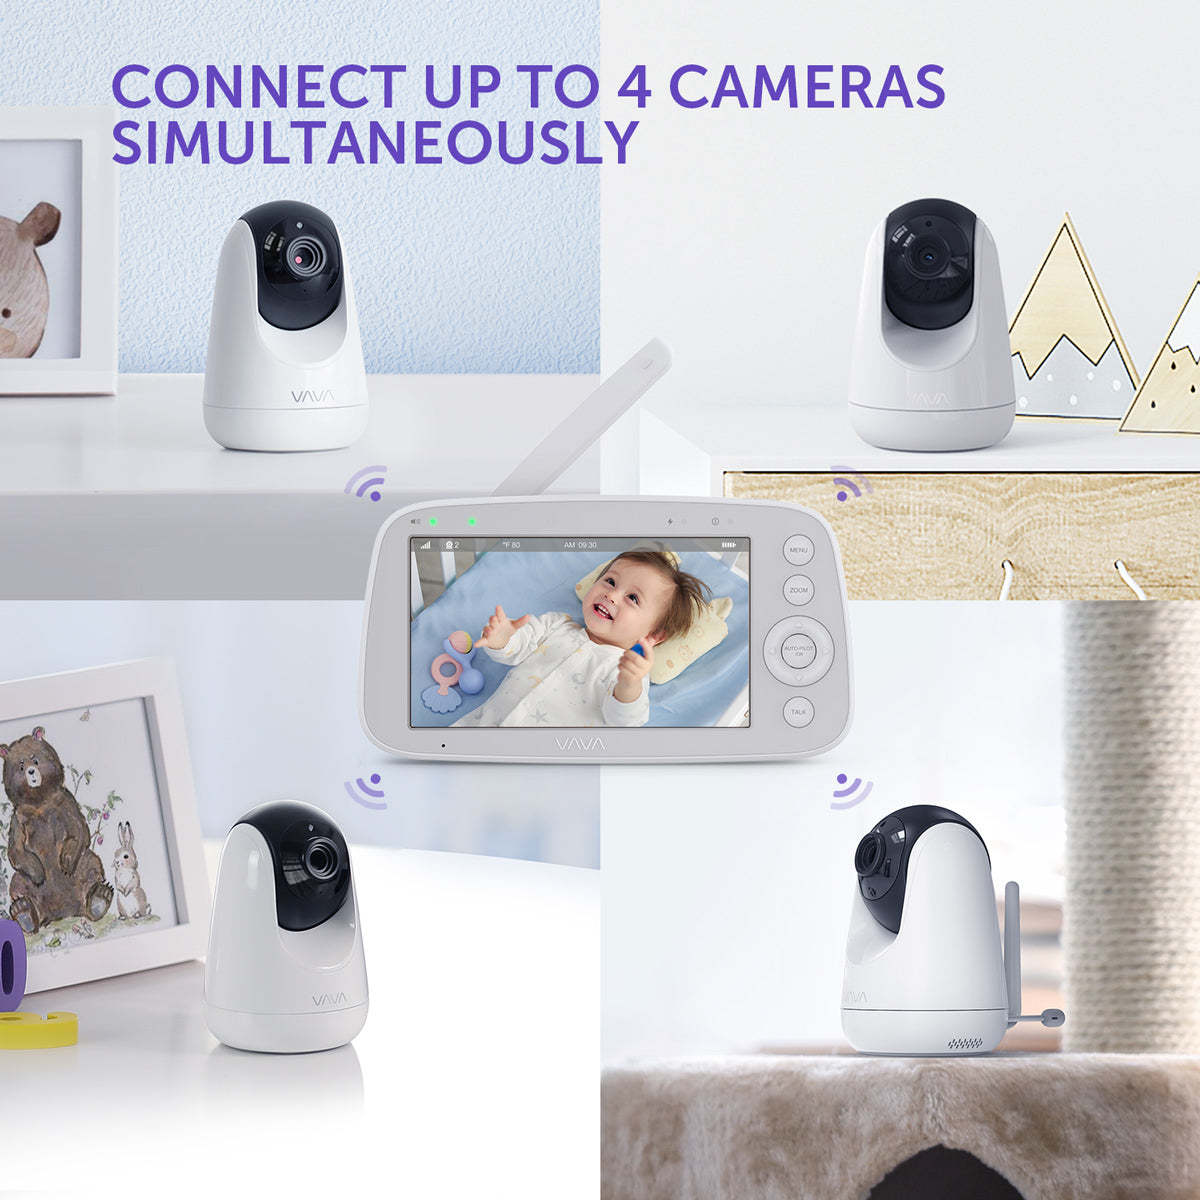 connect up to 4 cameras simultaneously